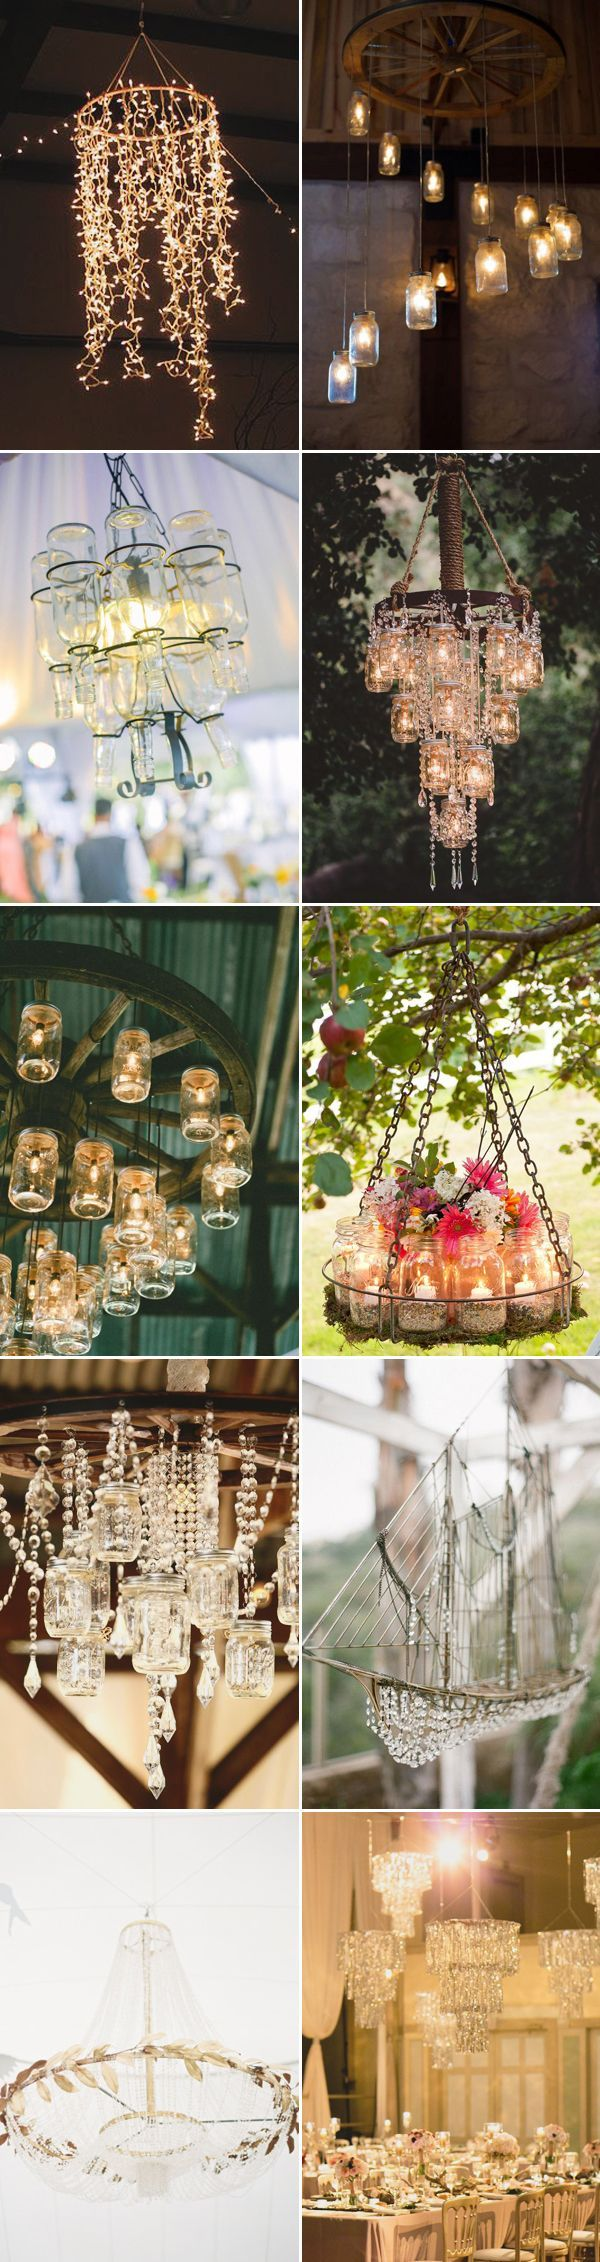 25 Romantic Wedding Chandelier Ideas / http://www.deerpearlflowers.com/romantic-wedding-chandelier-ideas/